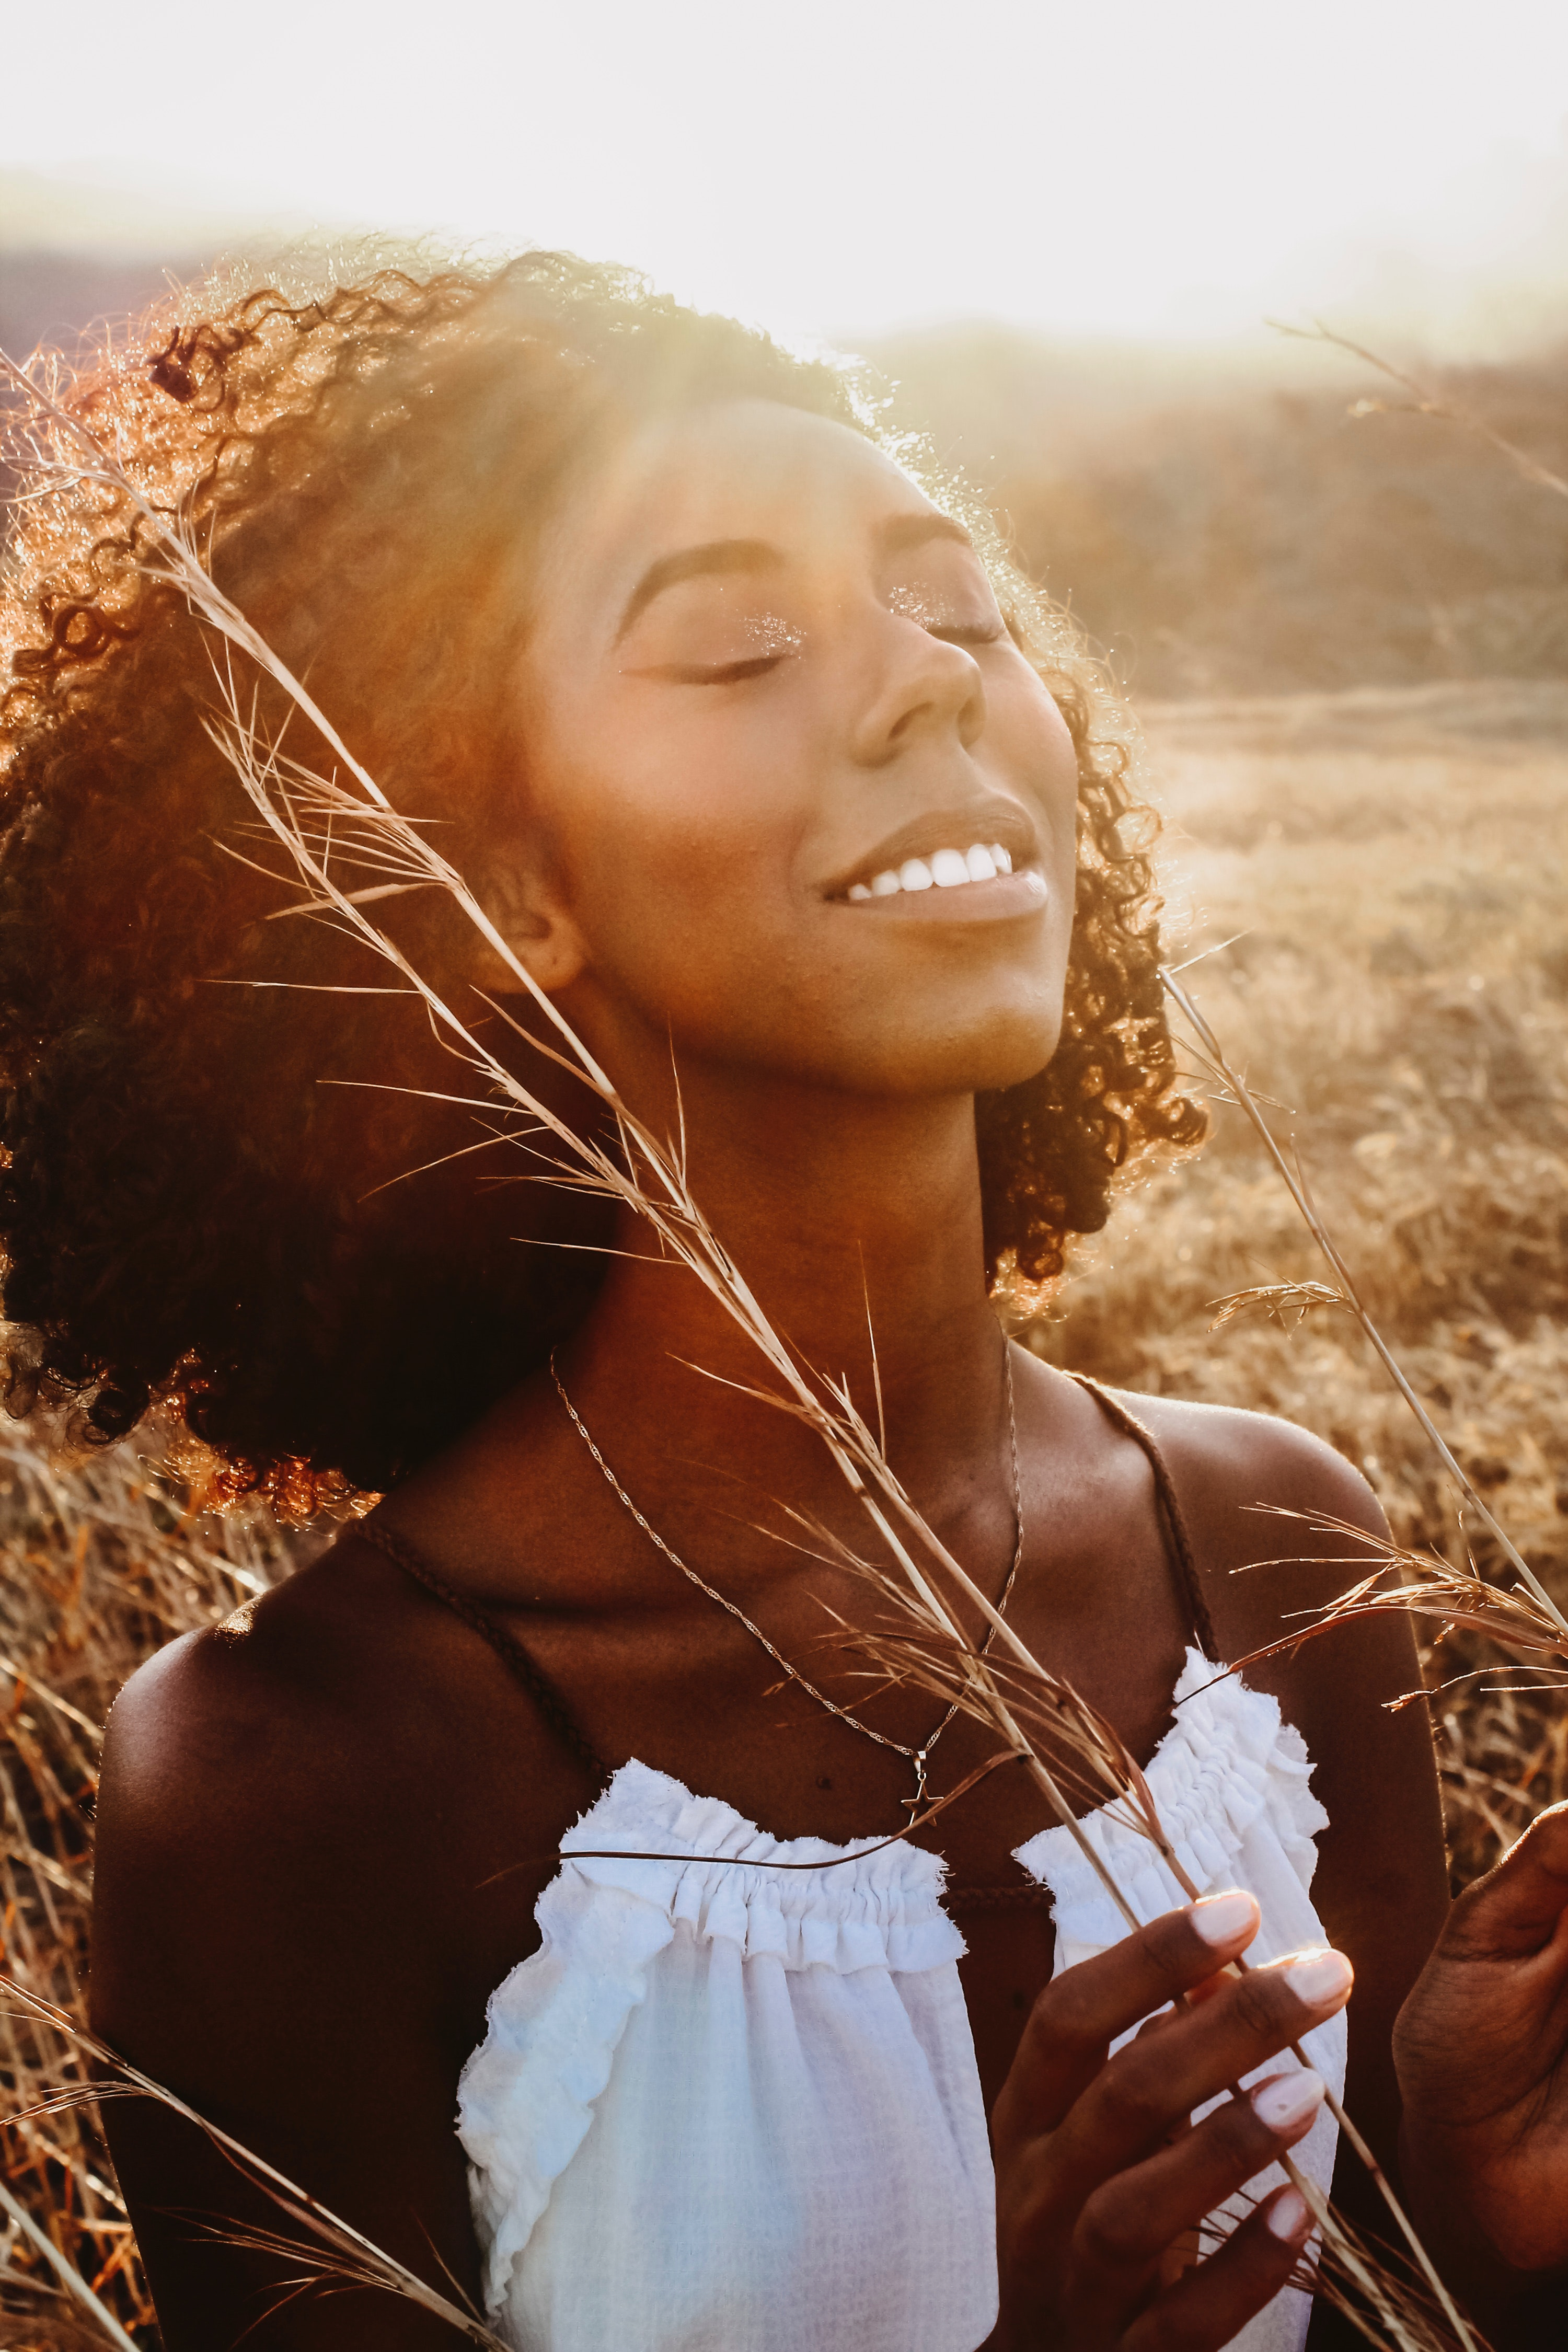 A Black woman serenely standing in a field with her eye closed